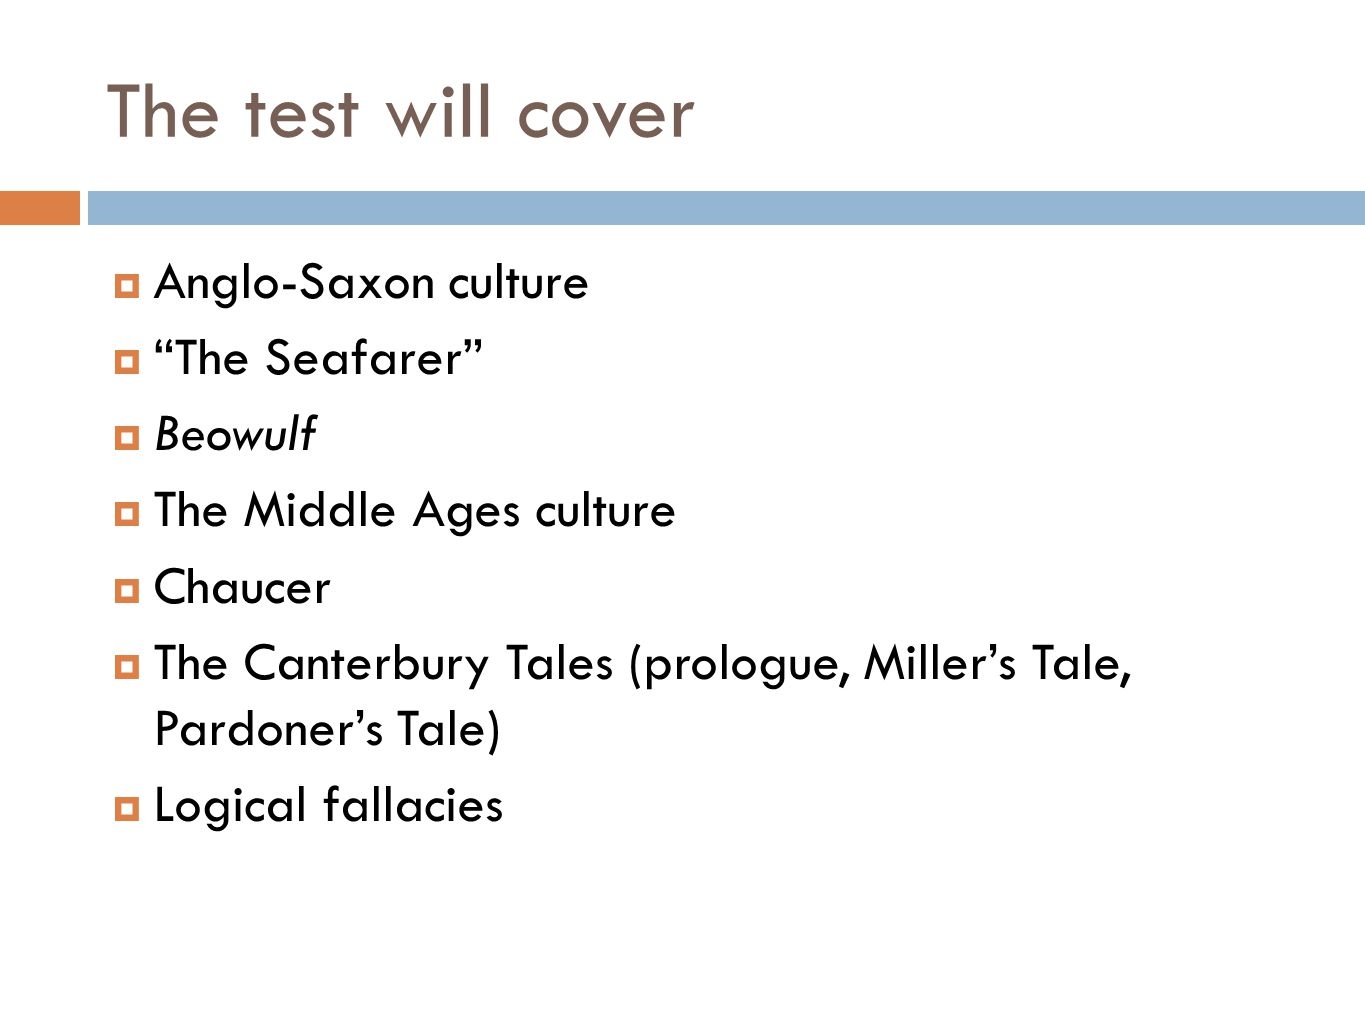 The test will cover  Anglo-Saxon culture  The Seafarer  Beowulf  The Middle Ages culture  Chaucer  The Canterbury Tales (prologue, Miller's Tale, Pardoner's Tale)  Logical fallacies